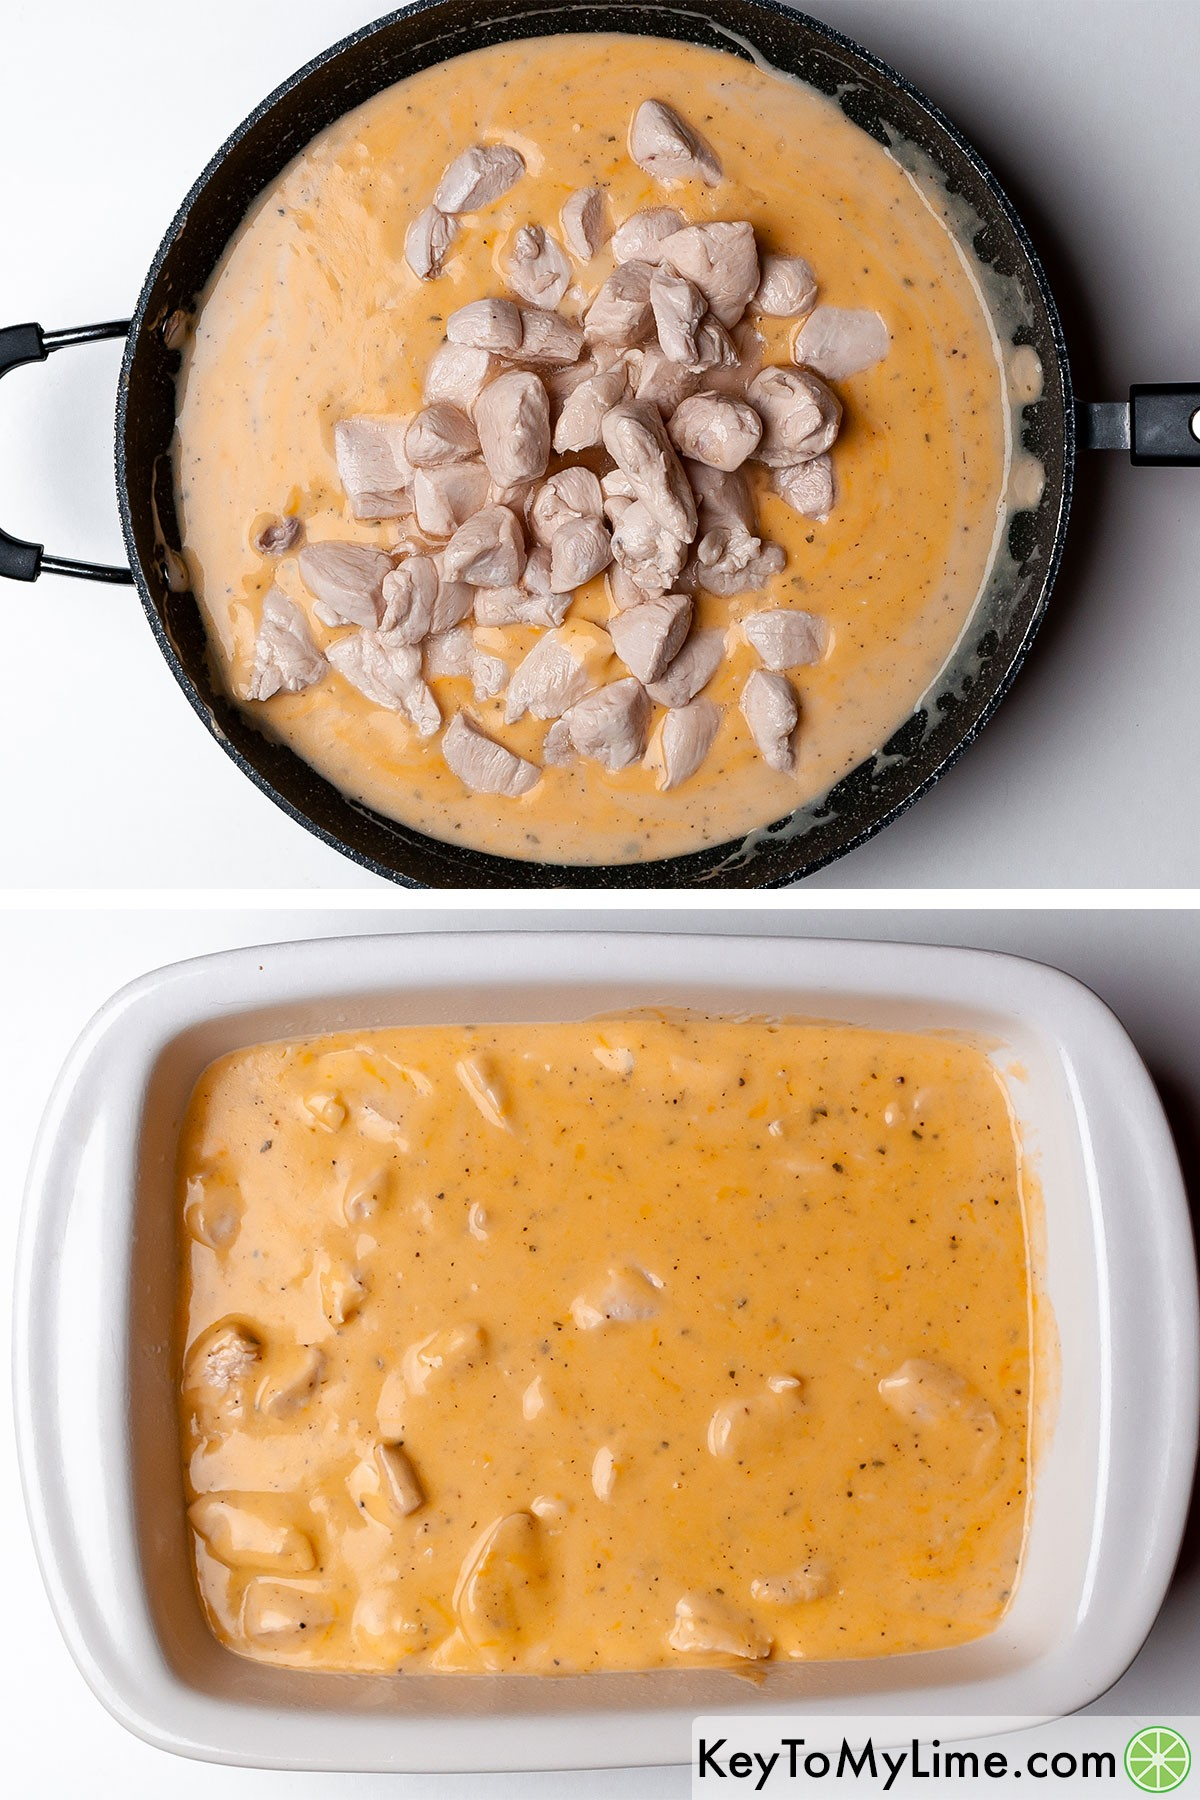 Mixing cooked chicken into the cheese sauce, then transferring that to a casserole dish.